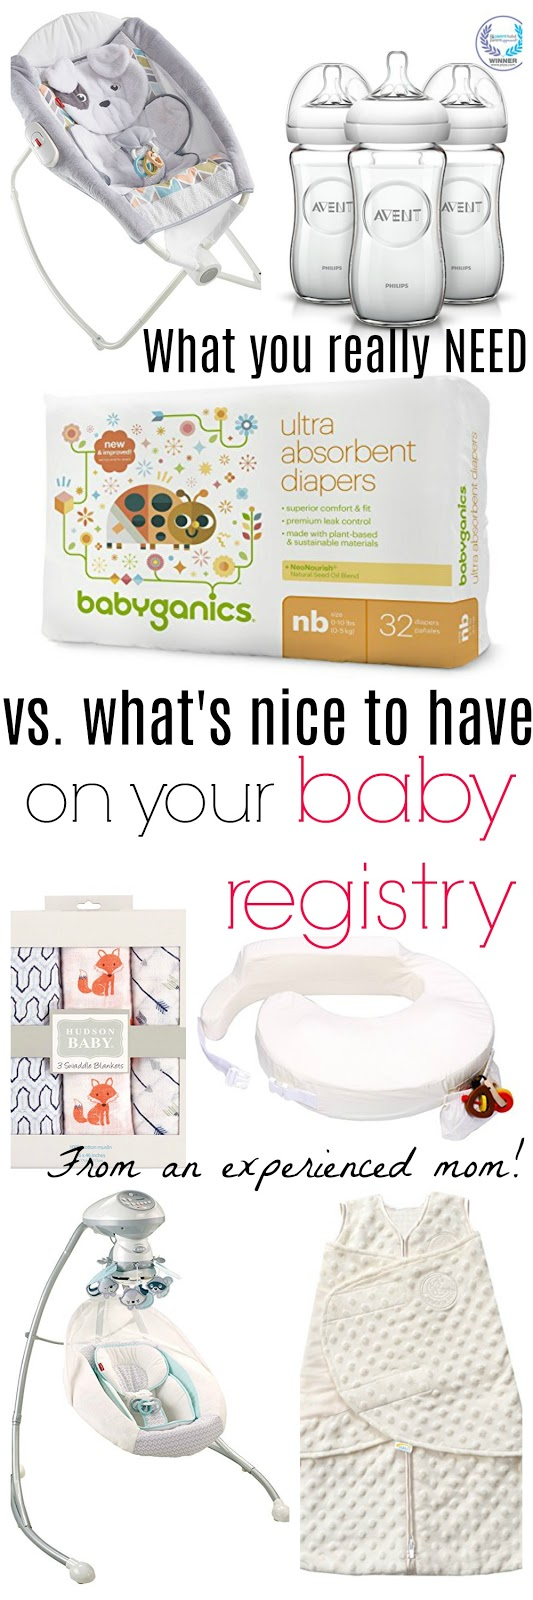 what you really need on your baby registry vs. what's nice to have on your baby registry from an experienced mom's perspective